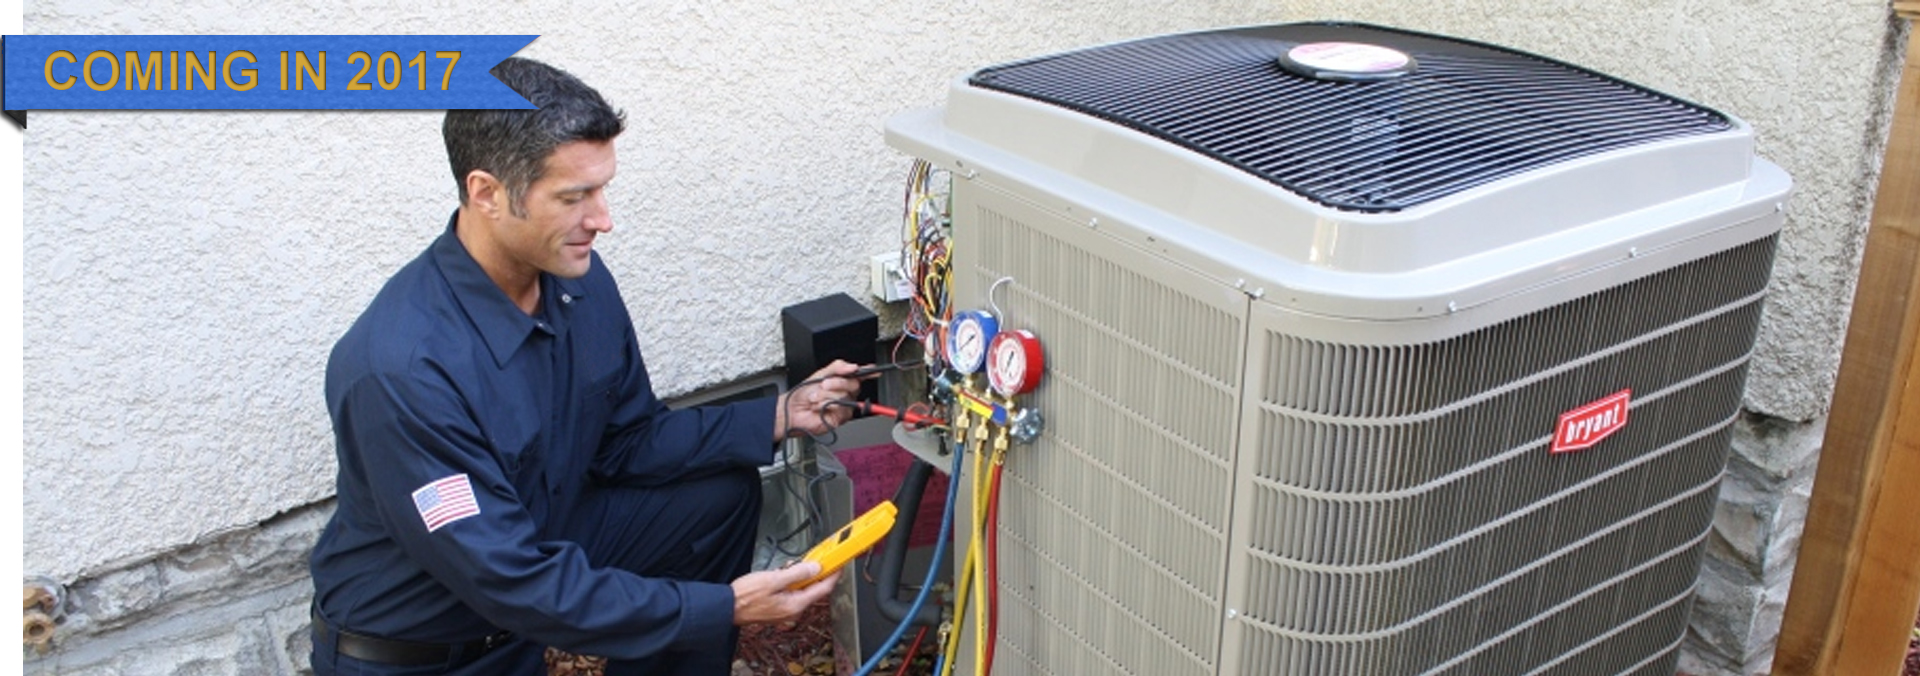 Pursue a career in Heating, Ventilation & Air Conditioning